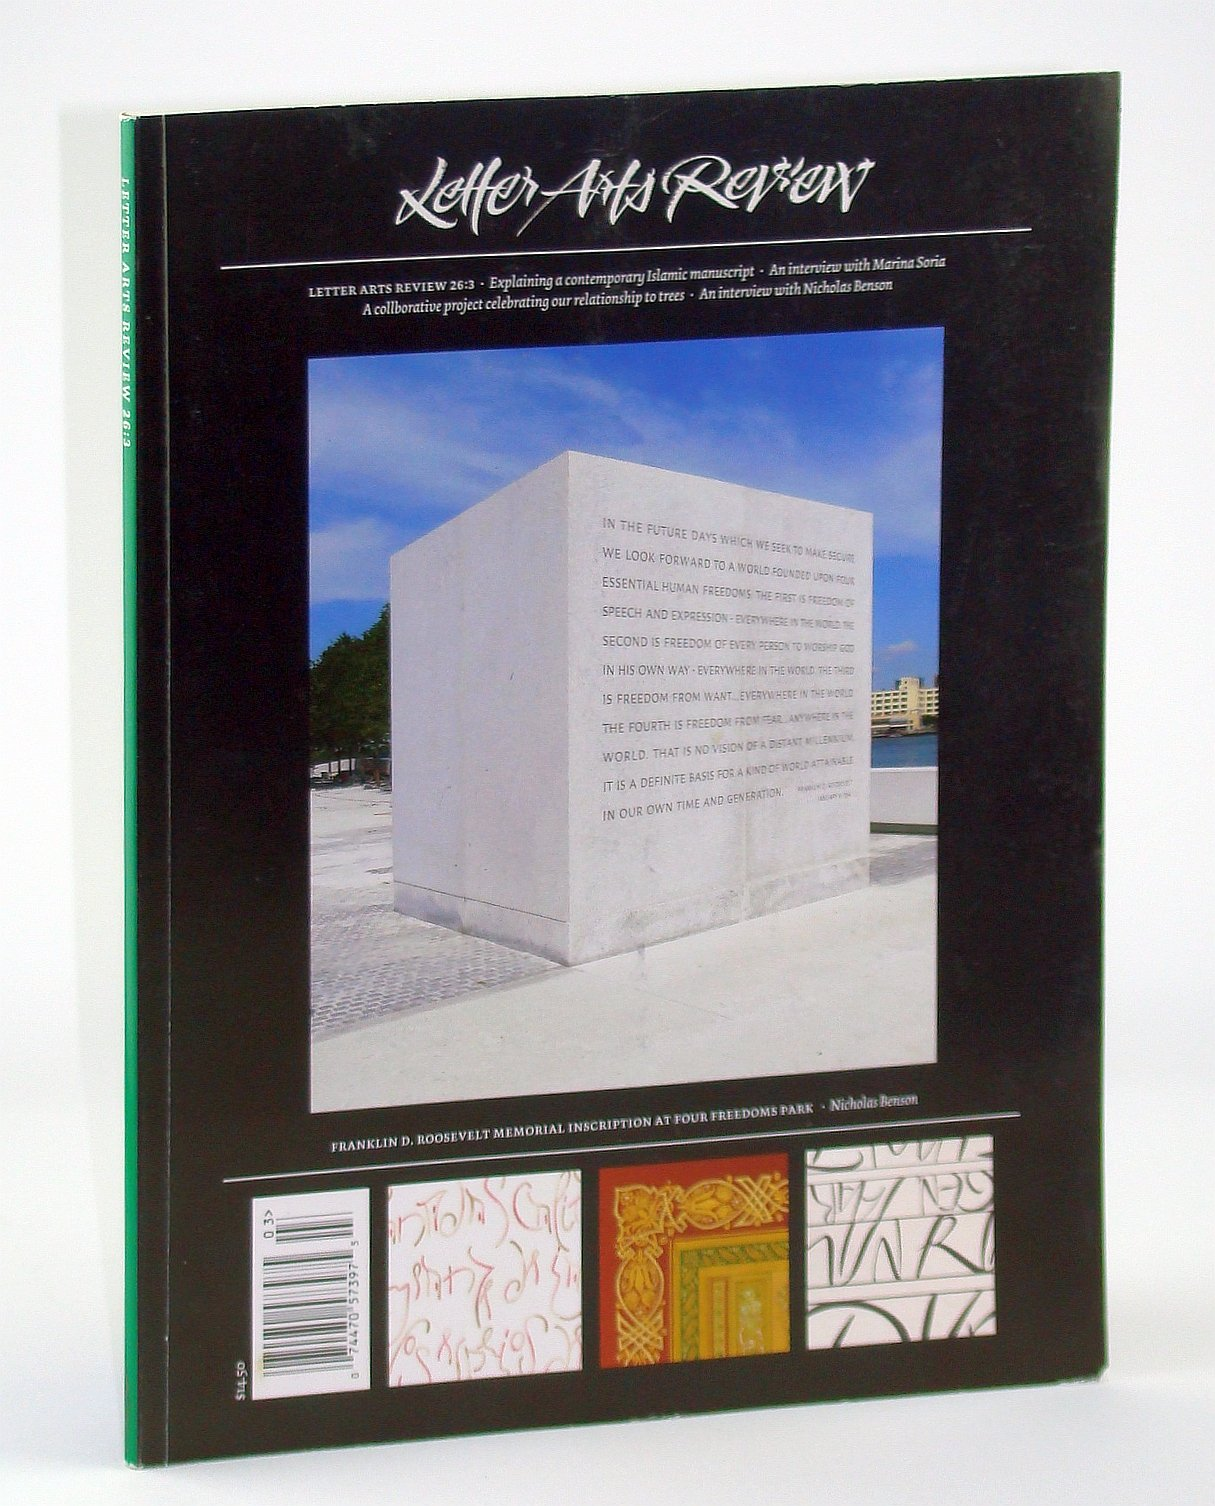 Letter Arts Review, Summer 2012, Volume 26, Number 3 - A